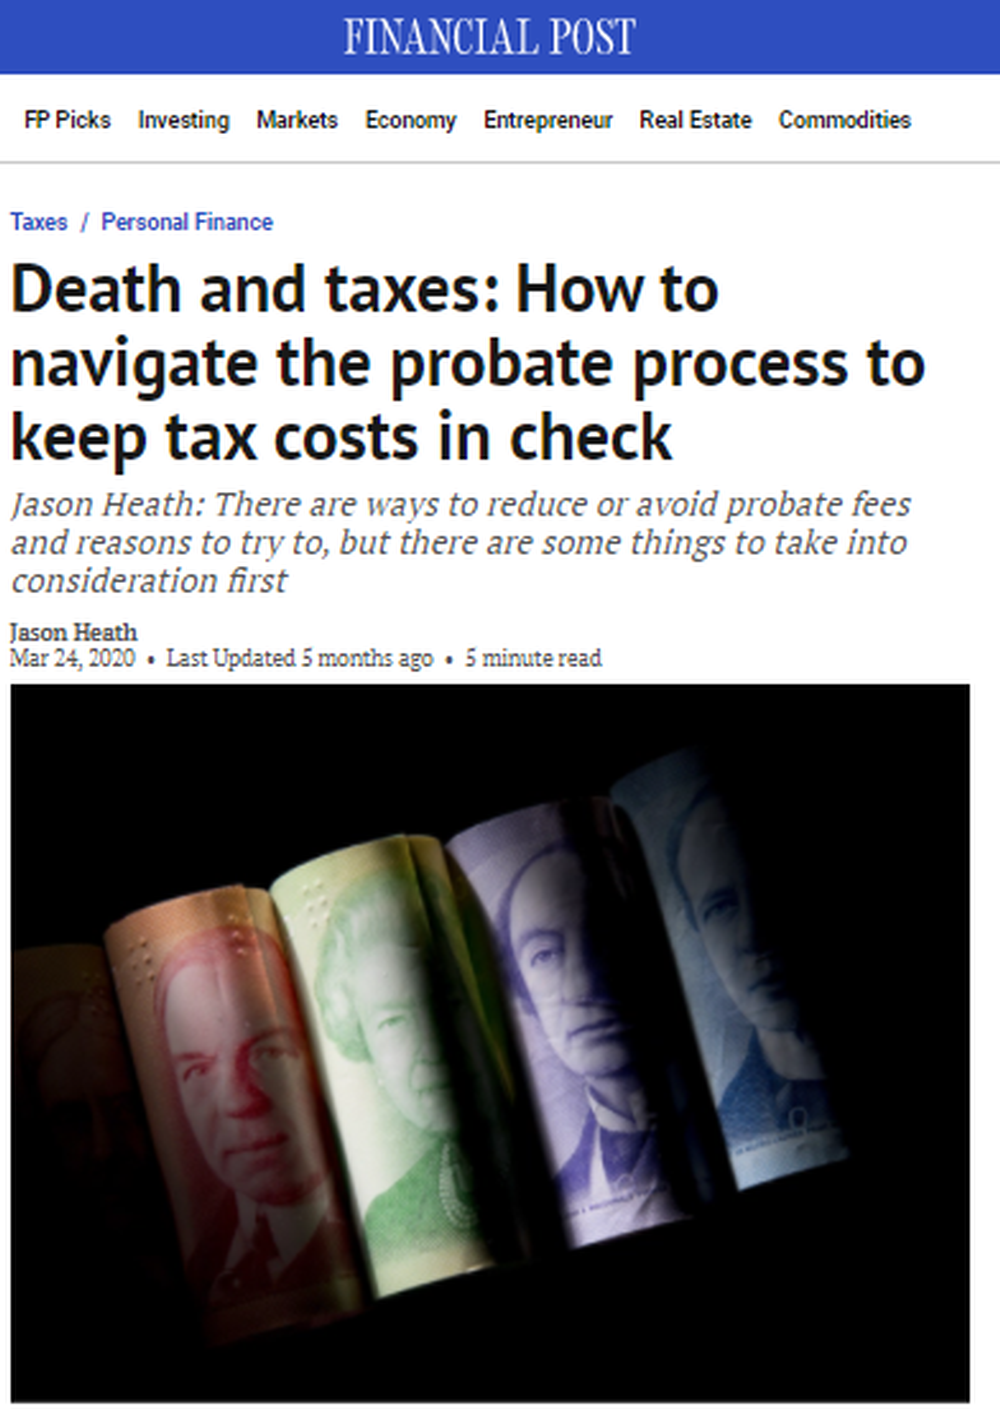 Death-and-taxes-How-to-navigate-the-probate-process-to-keep-tax-costs-in-check-Financial-Post.png